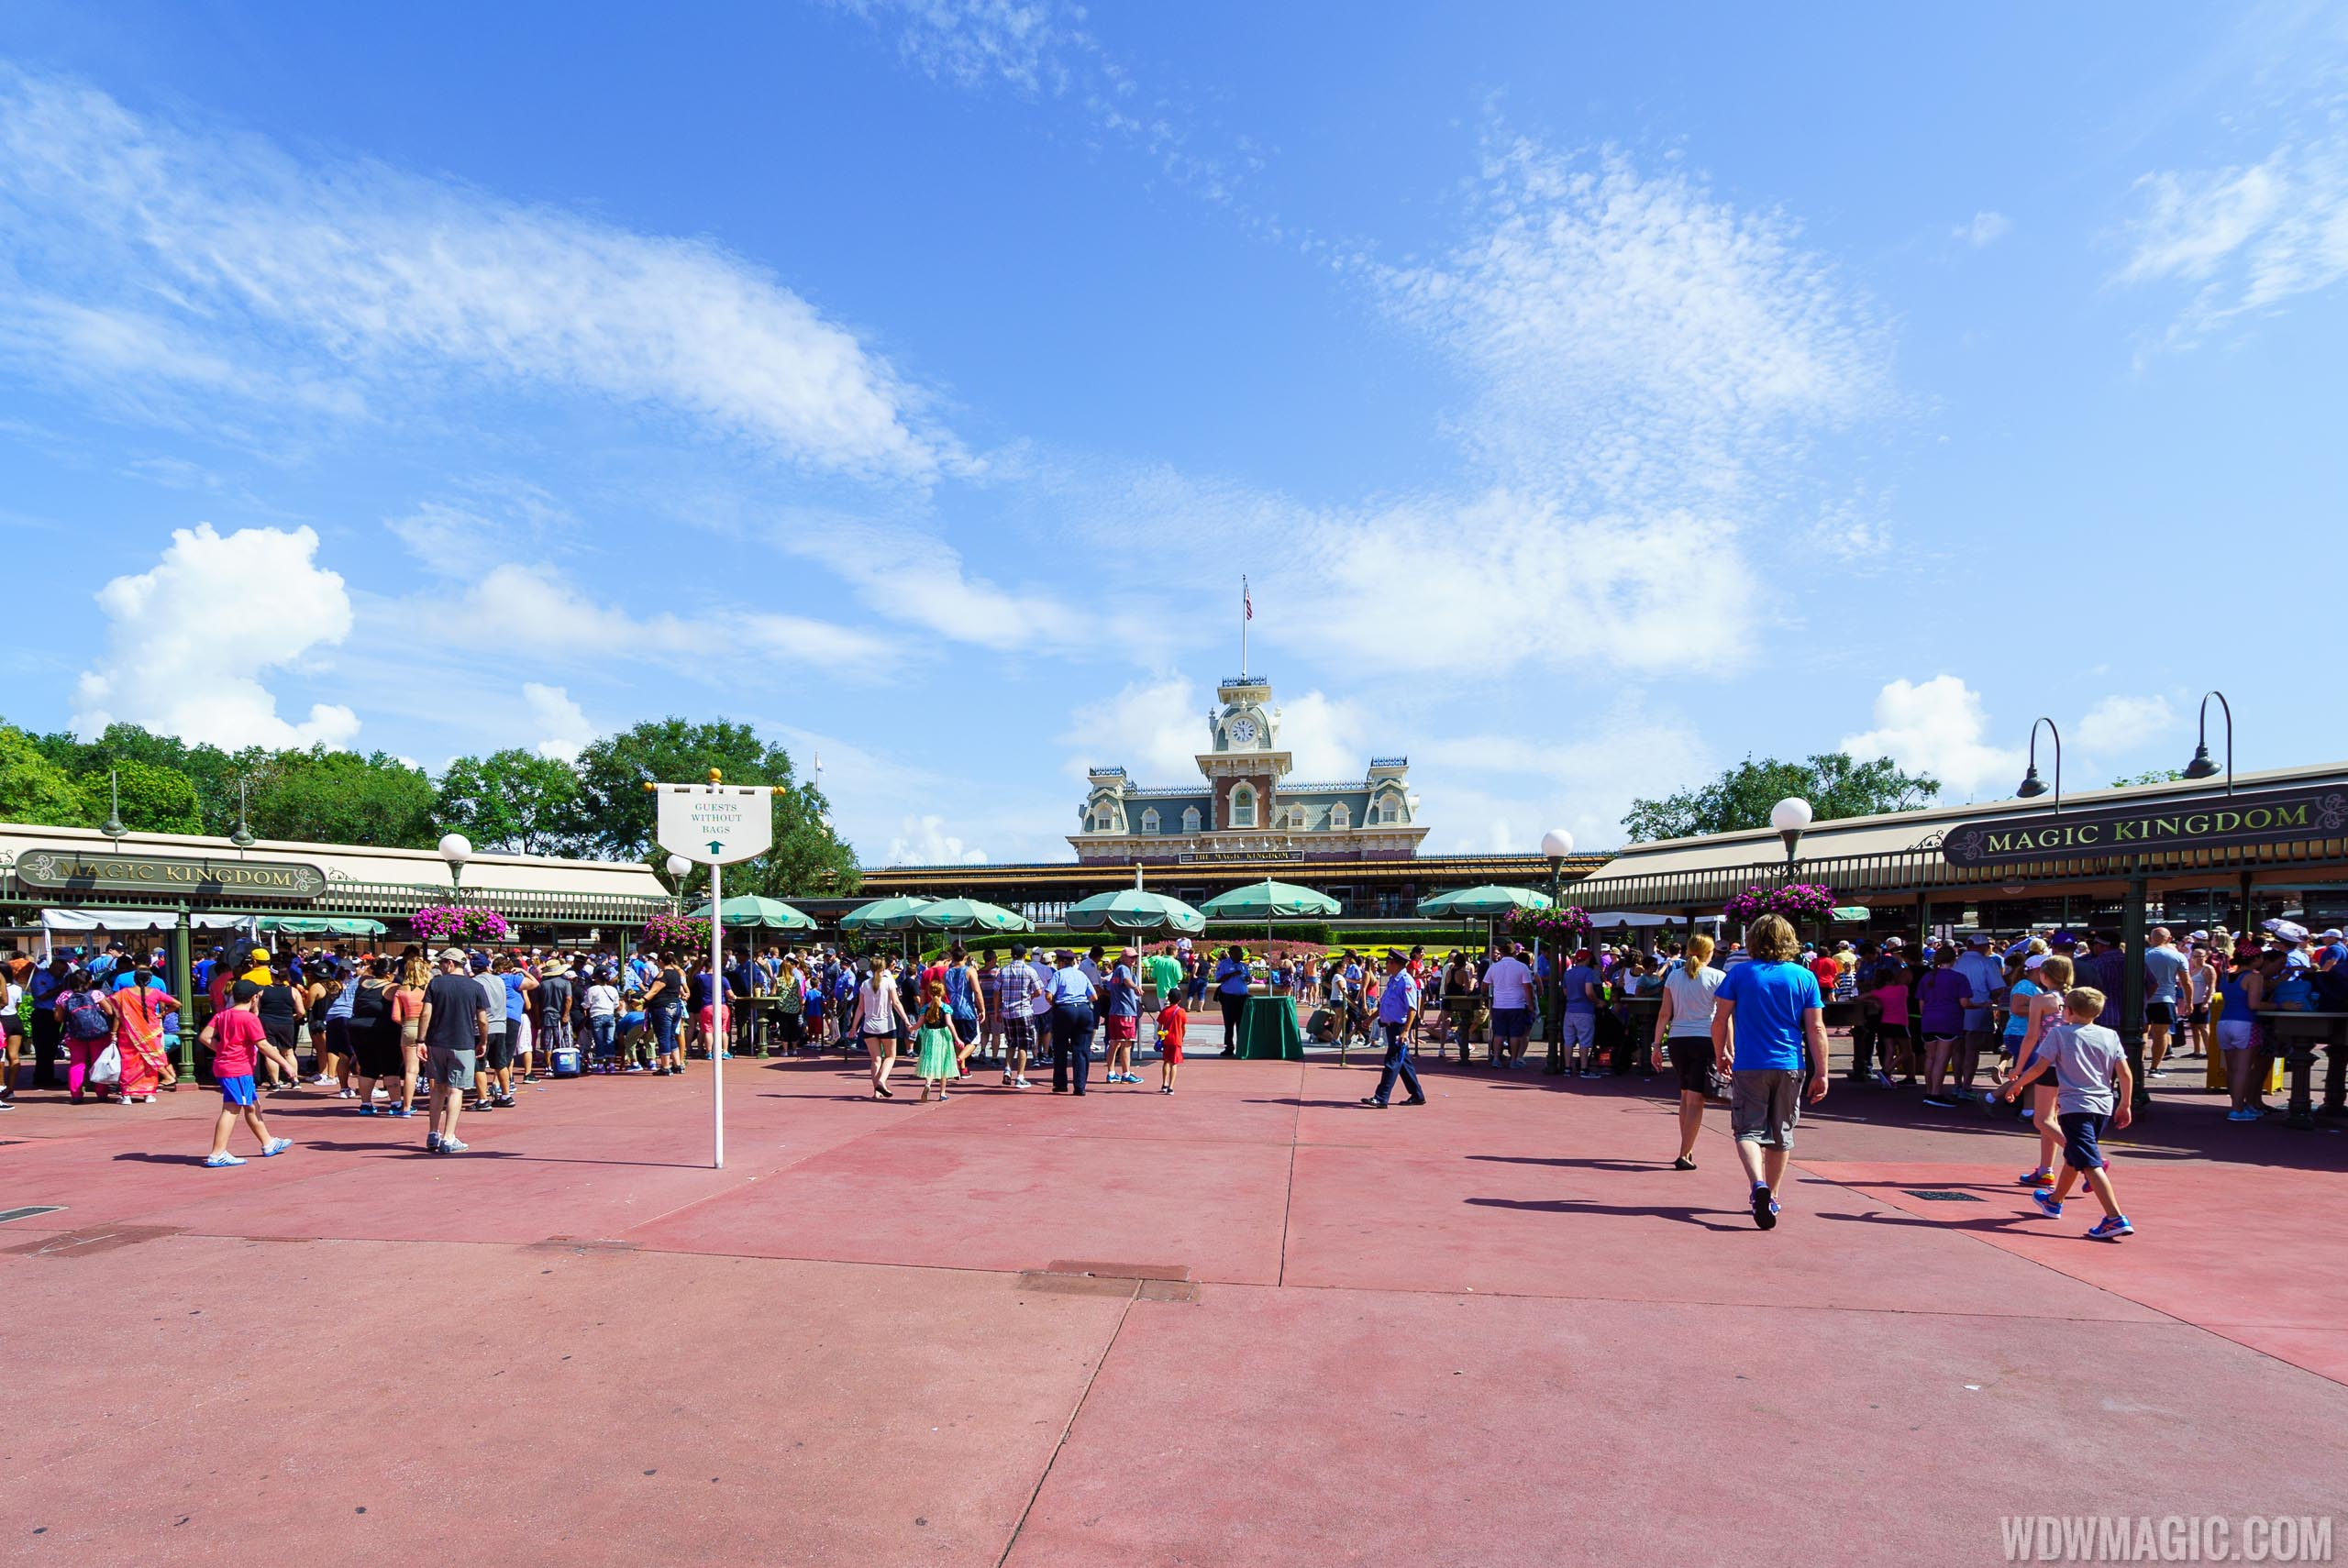 Magic Kingdom entrance